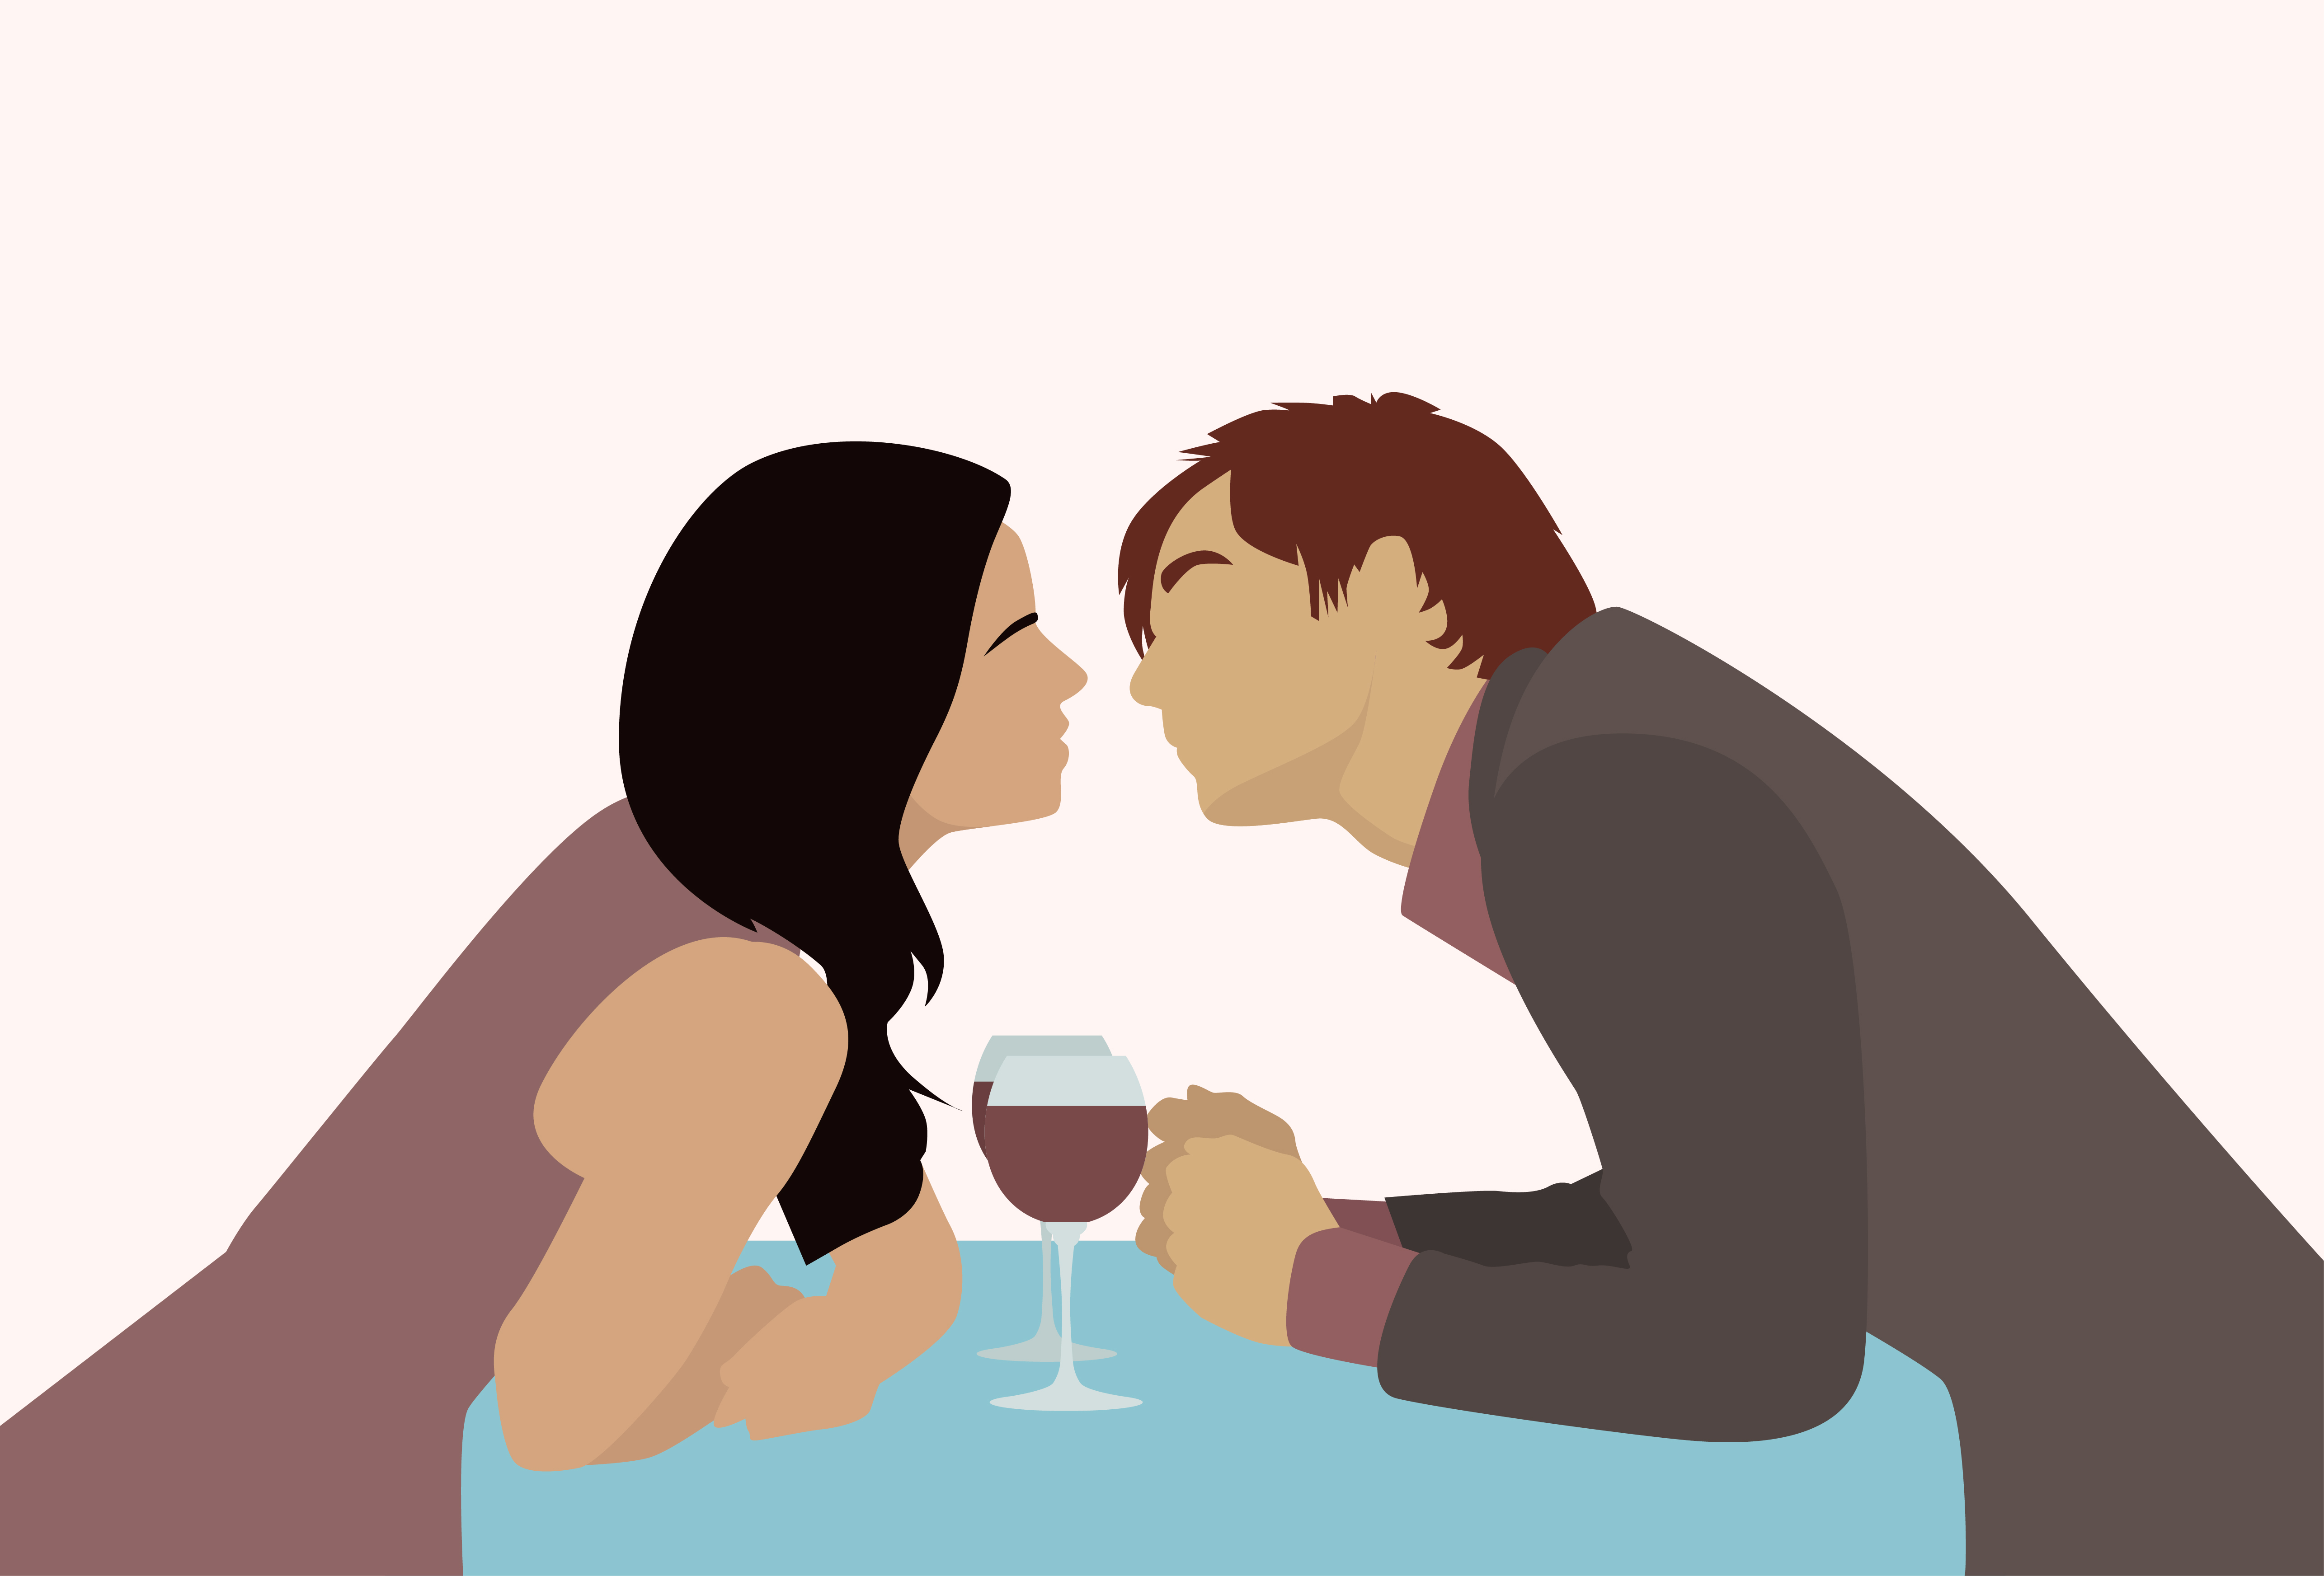 The history of dating reveals how consumerism has hijacked courtship